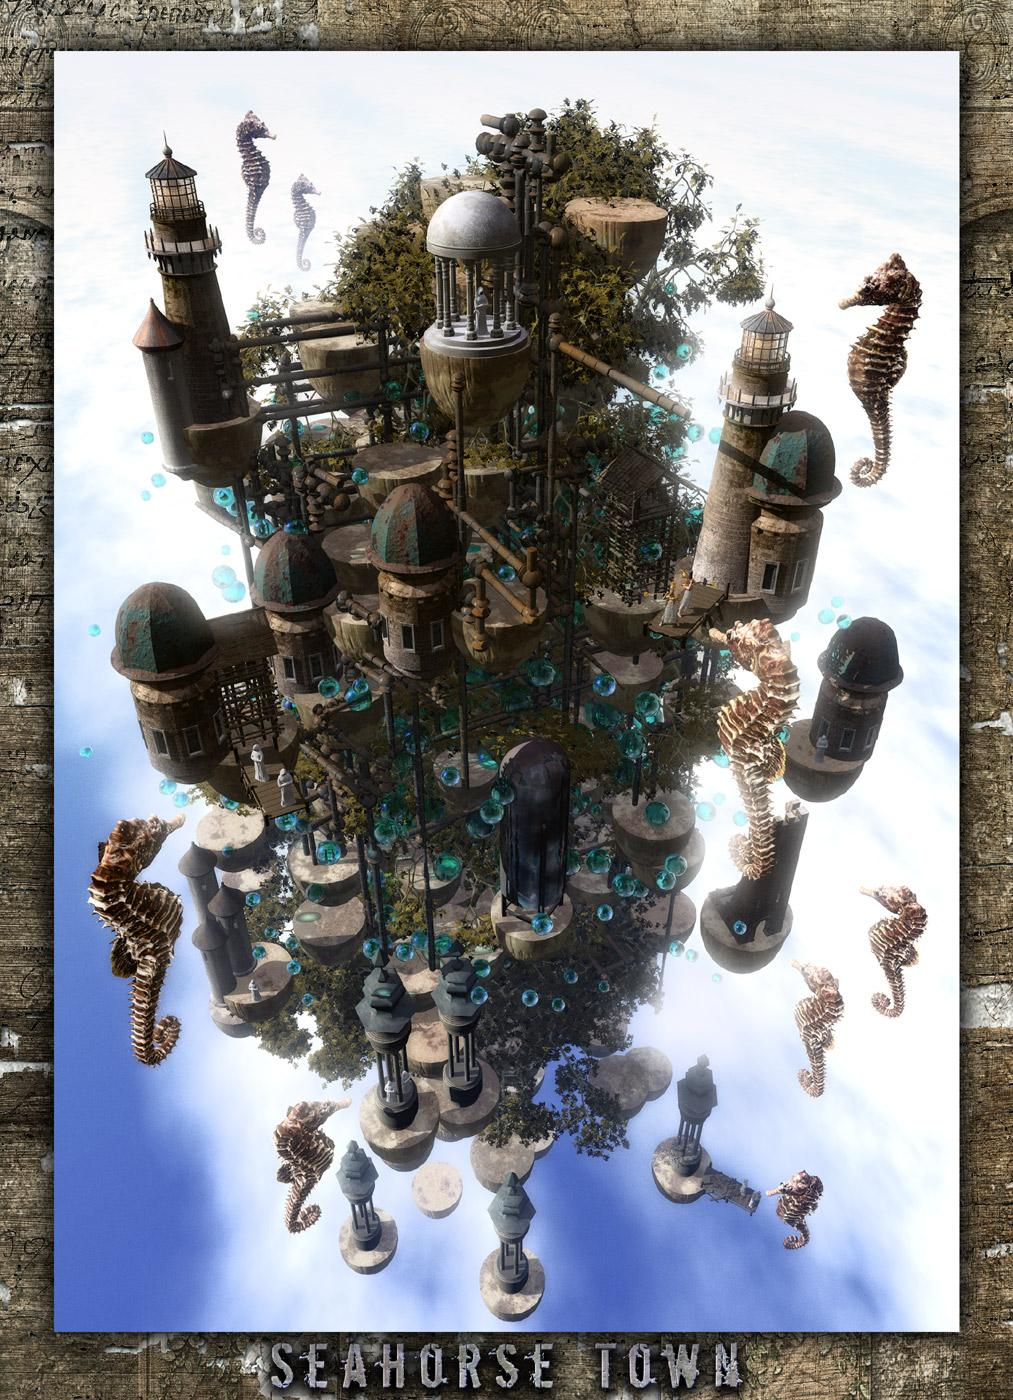 Seahorse Town by brylaz